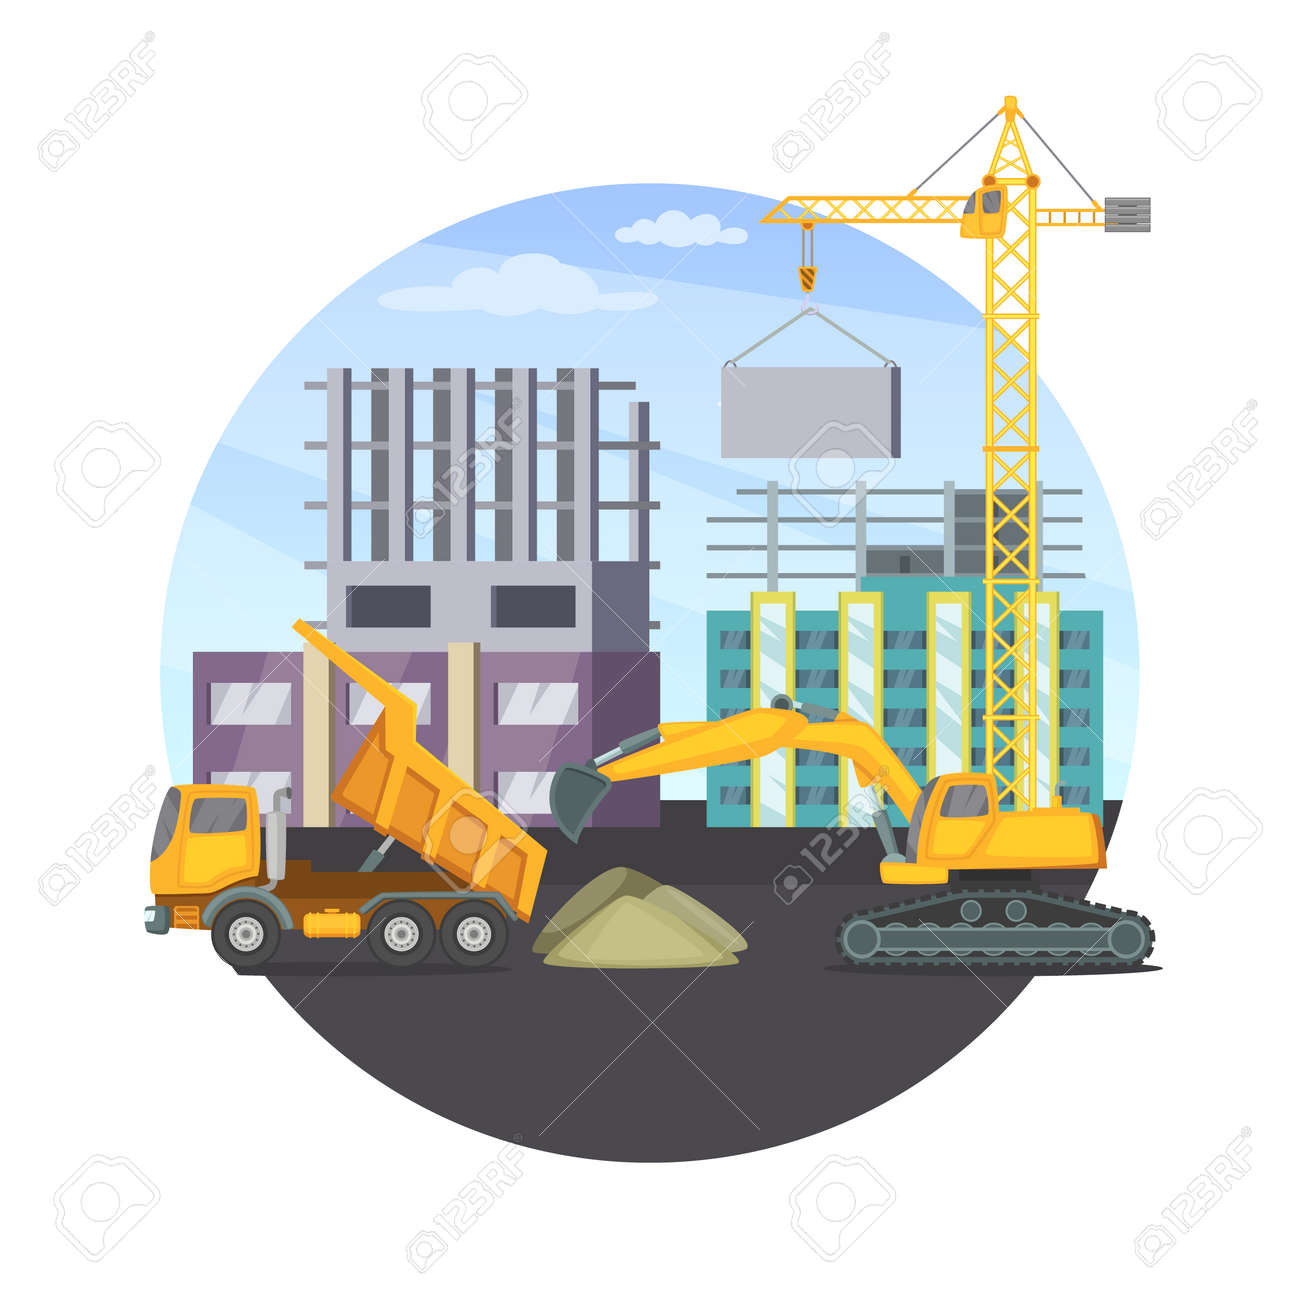 Construction concept with unfinished modern building and different heavy machines. Vector illustration. Machinery truck bulldozer transport - 165995453